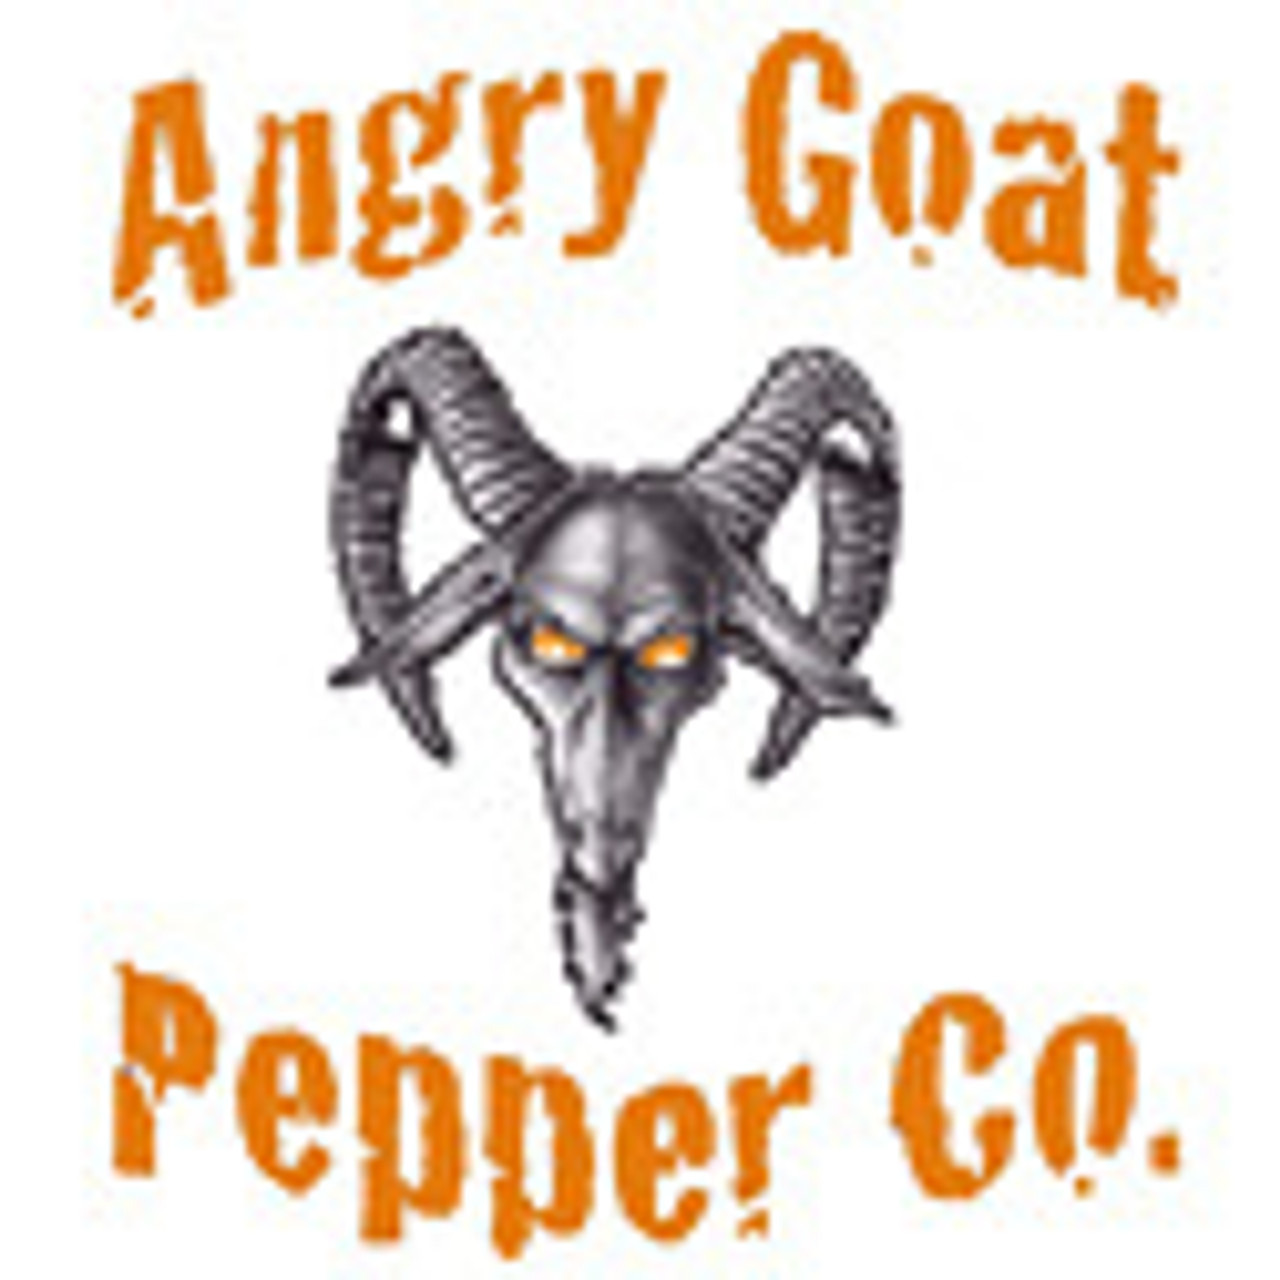 Angry Goat Pepper Co